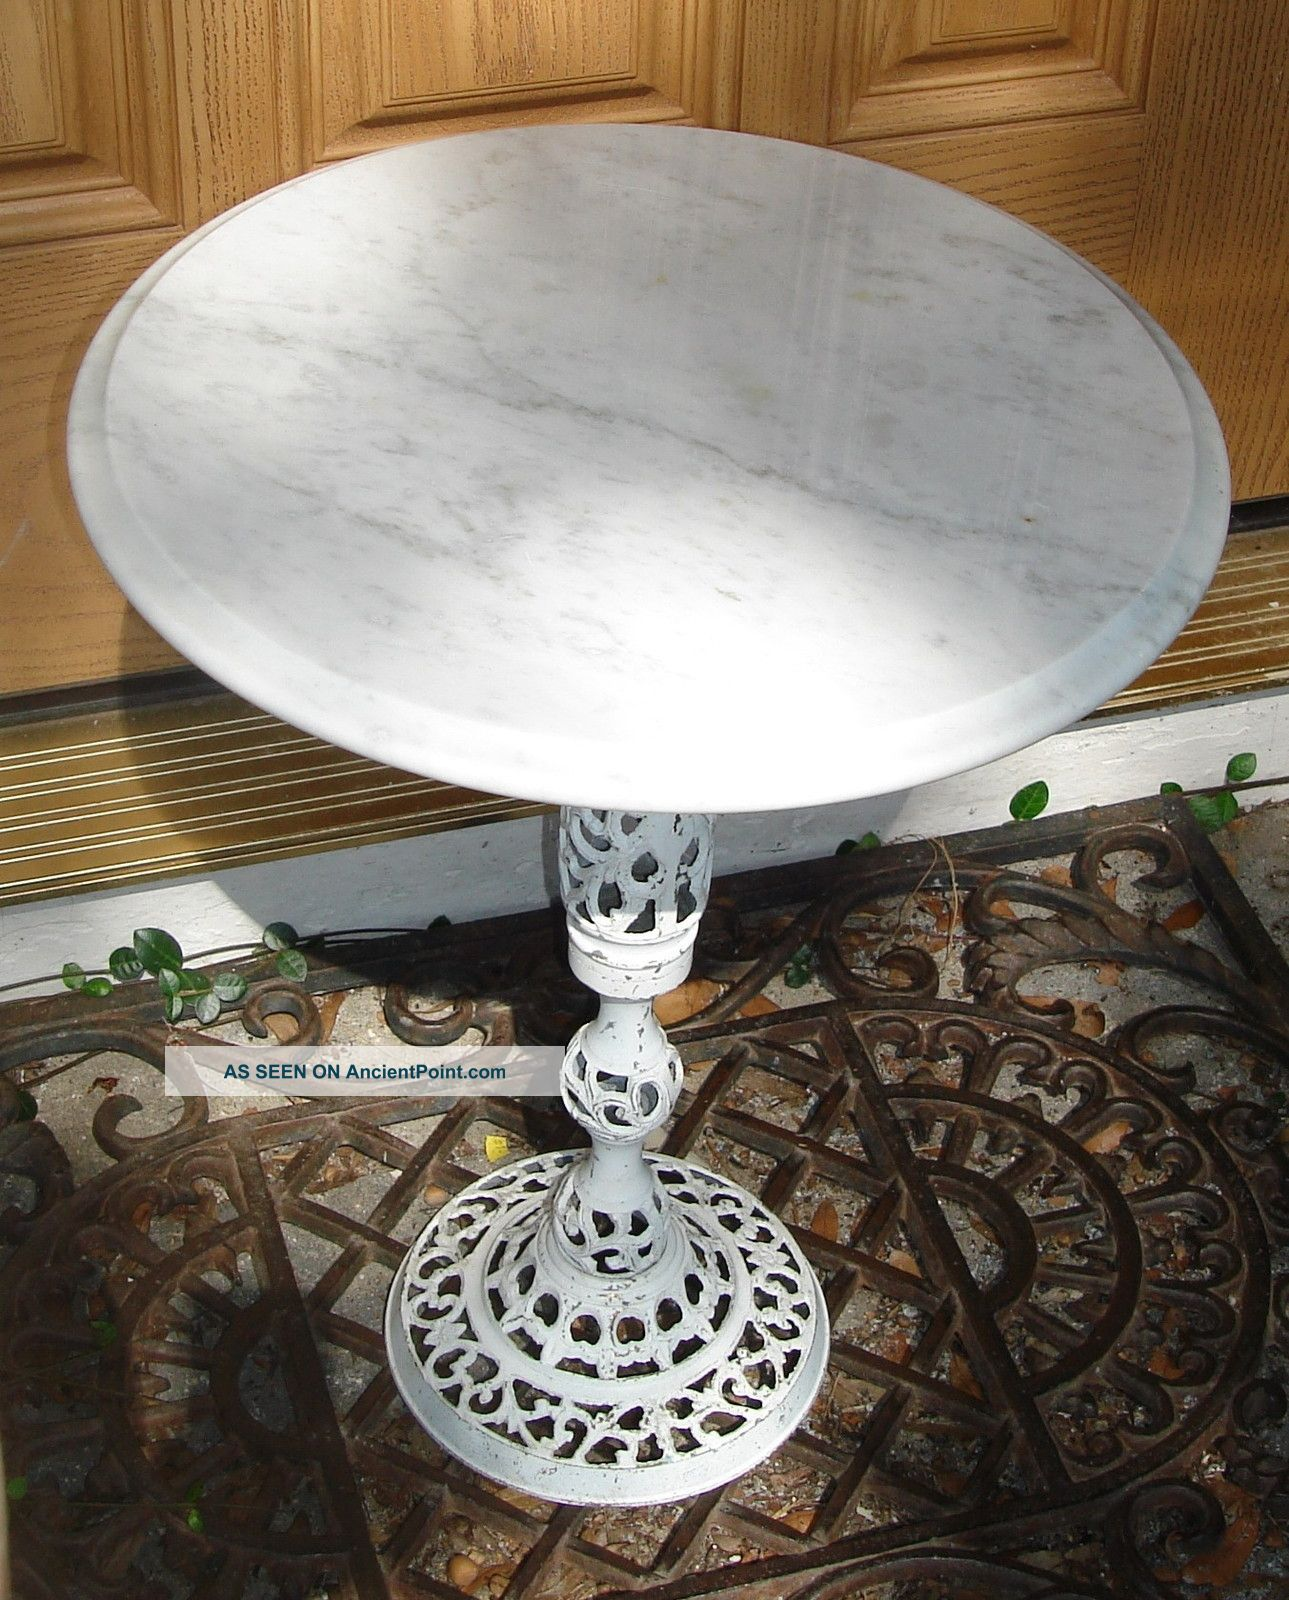 Uploaded By Vostochnyi On Jul 17, 2011. Known Information Category :  Furniture U003e Tables U003e Post 1950 Item Id: 79009. Type: Tables Region Of  Origin: Italy